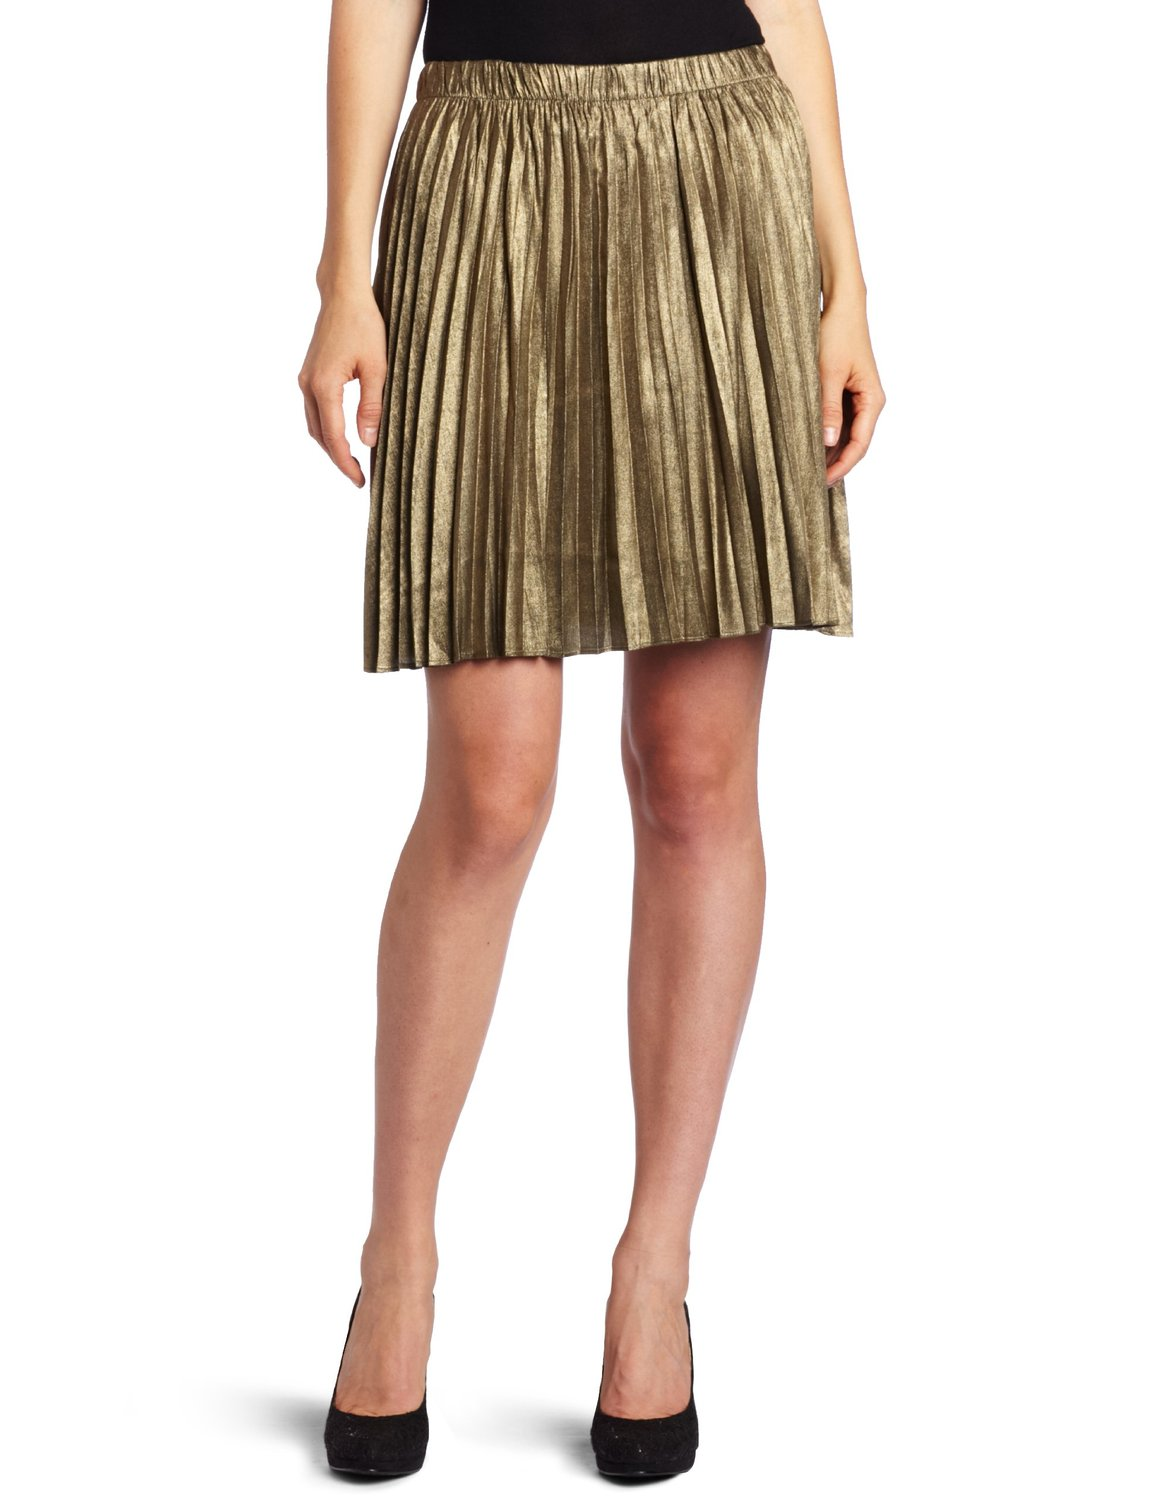 Small at amazon women's clothing store: